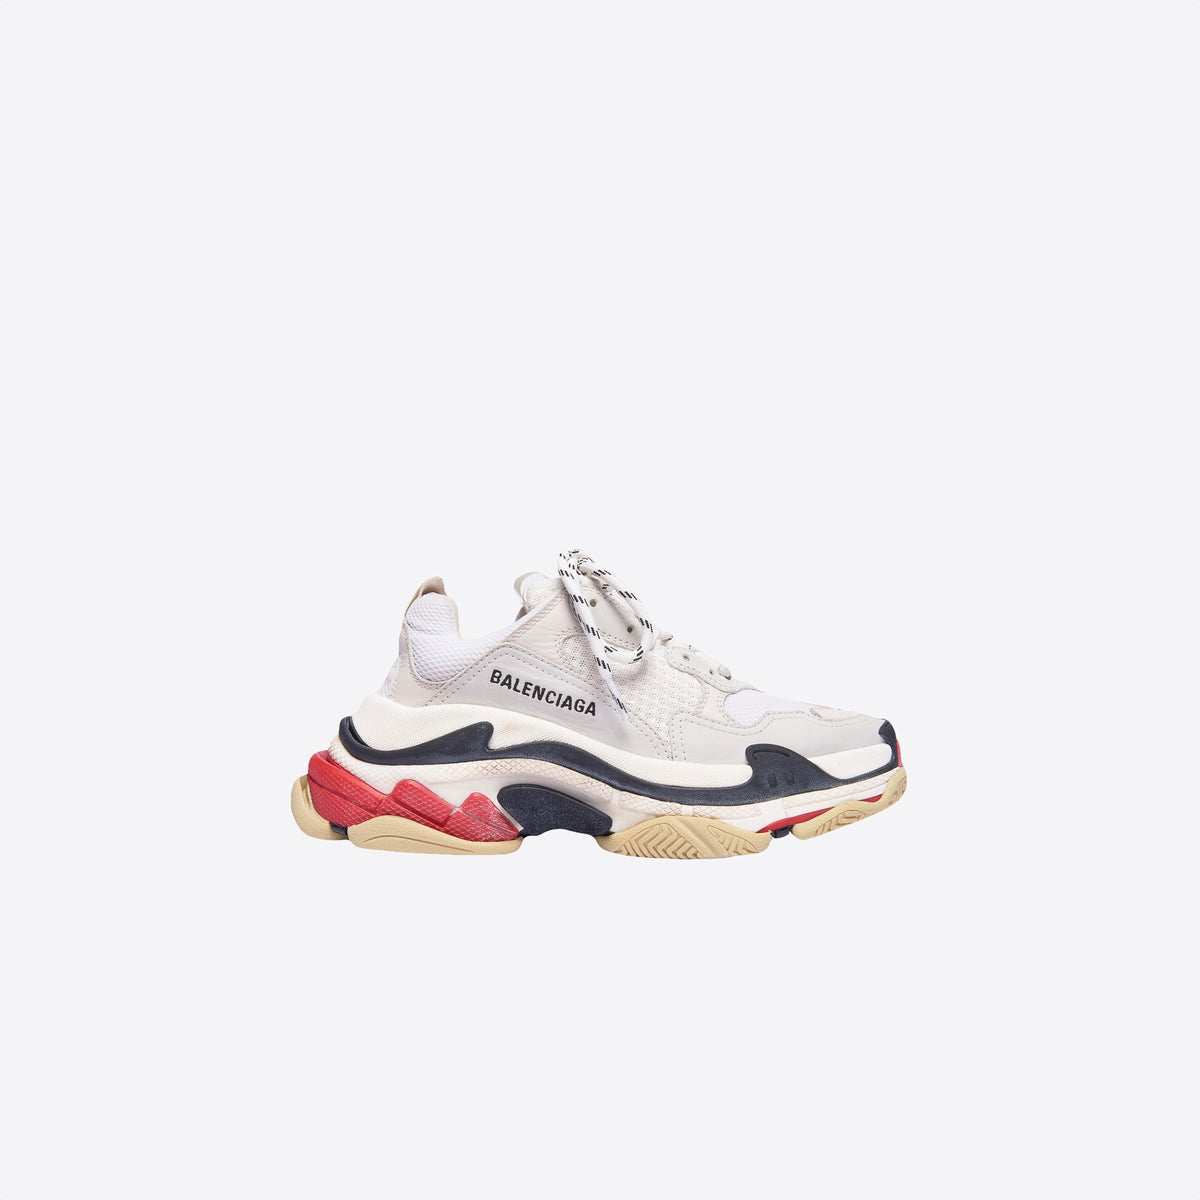 TRIPLE S SNEAKER - white/red/black